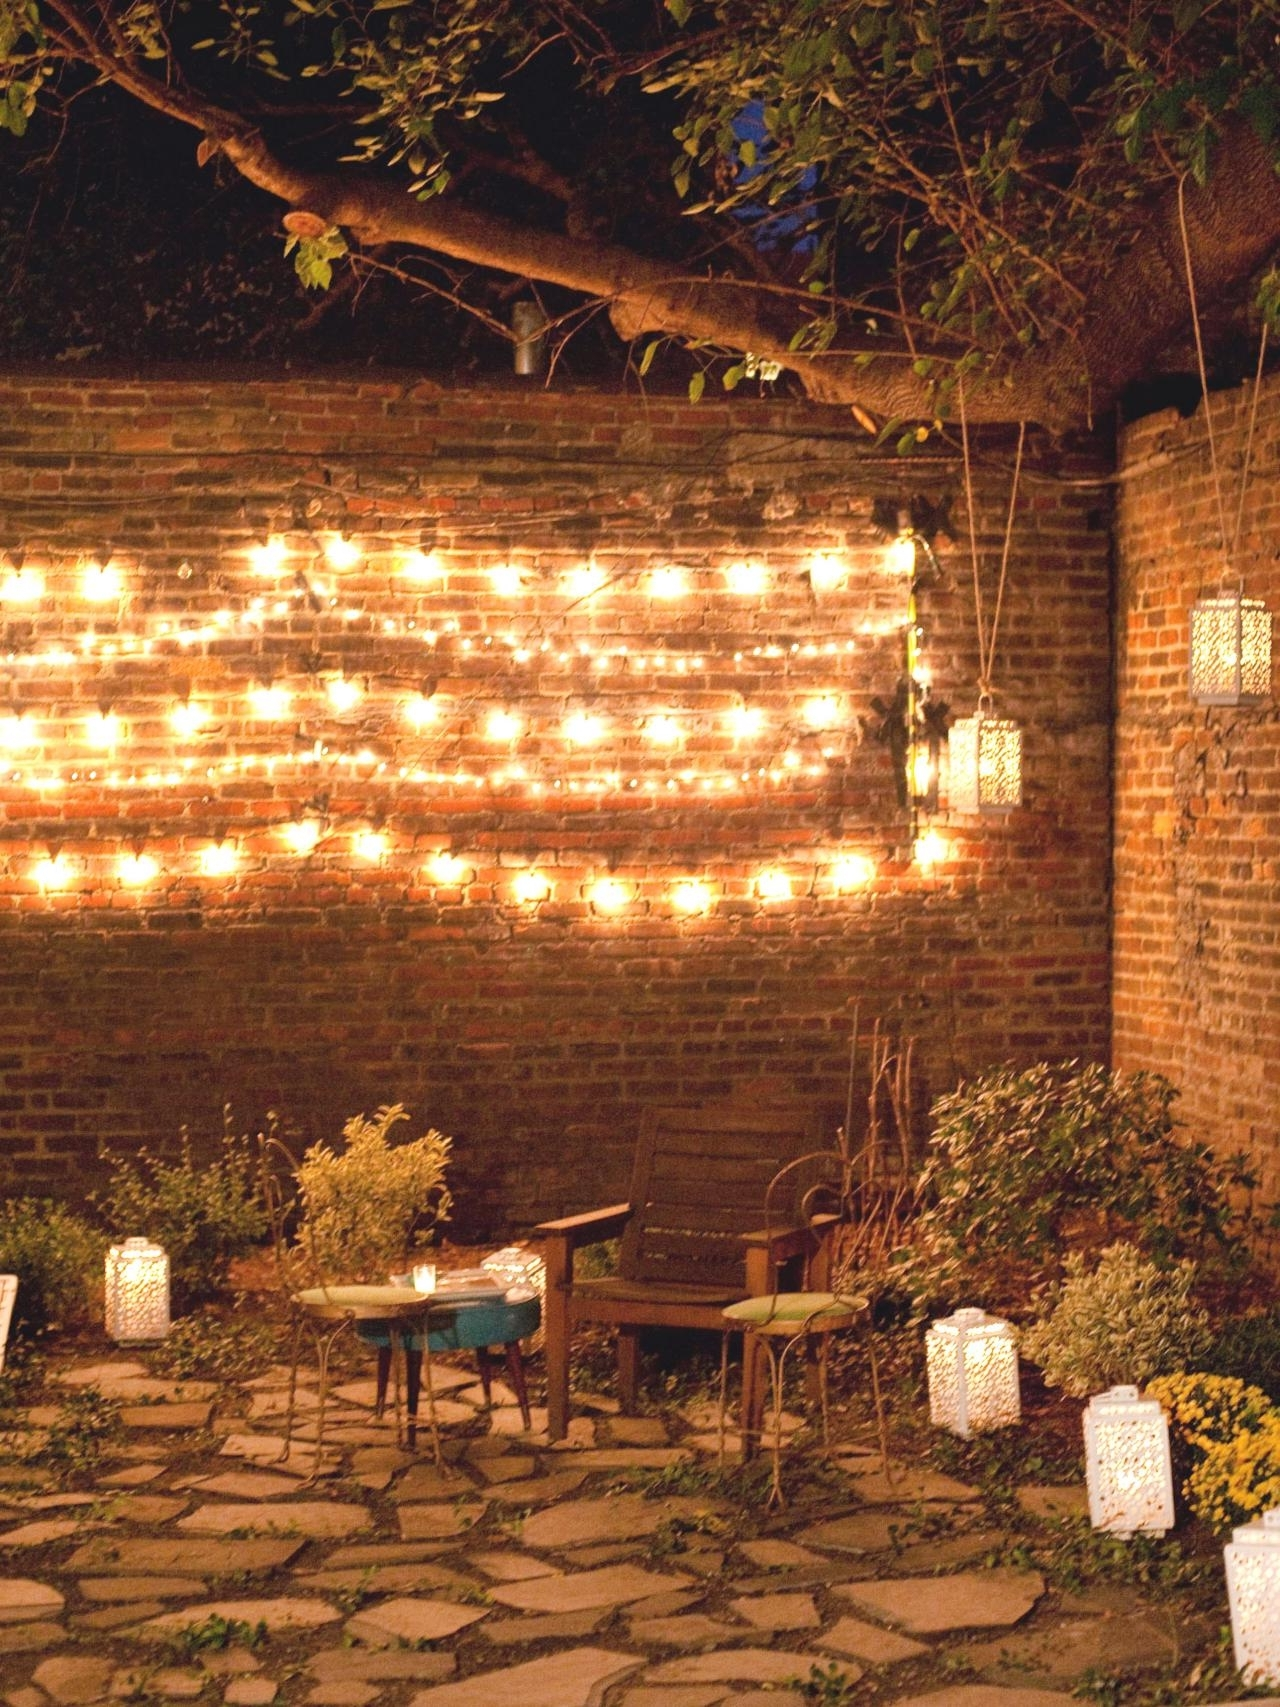 Preferred Outdoor Hanging Wall Lights Throughout Hanging String Lights Outdoors Amazing Patio Bright July Diy Outdoor (View 11 of 20)